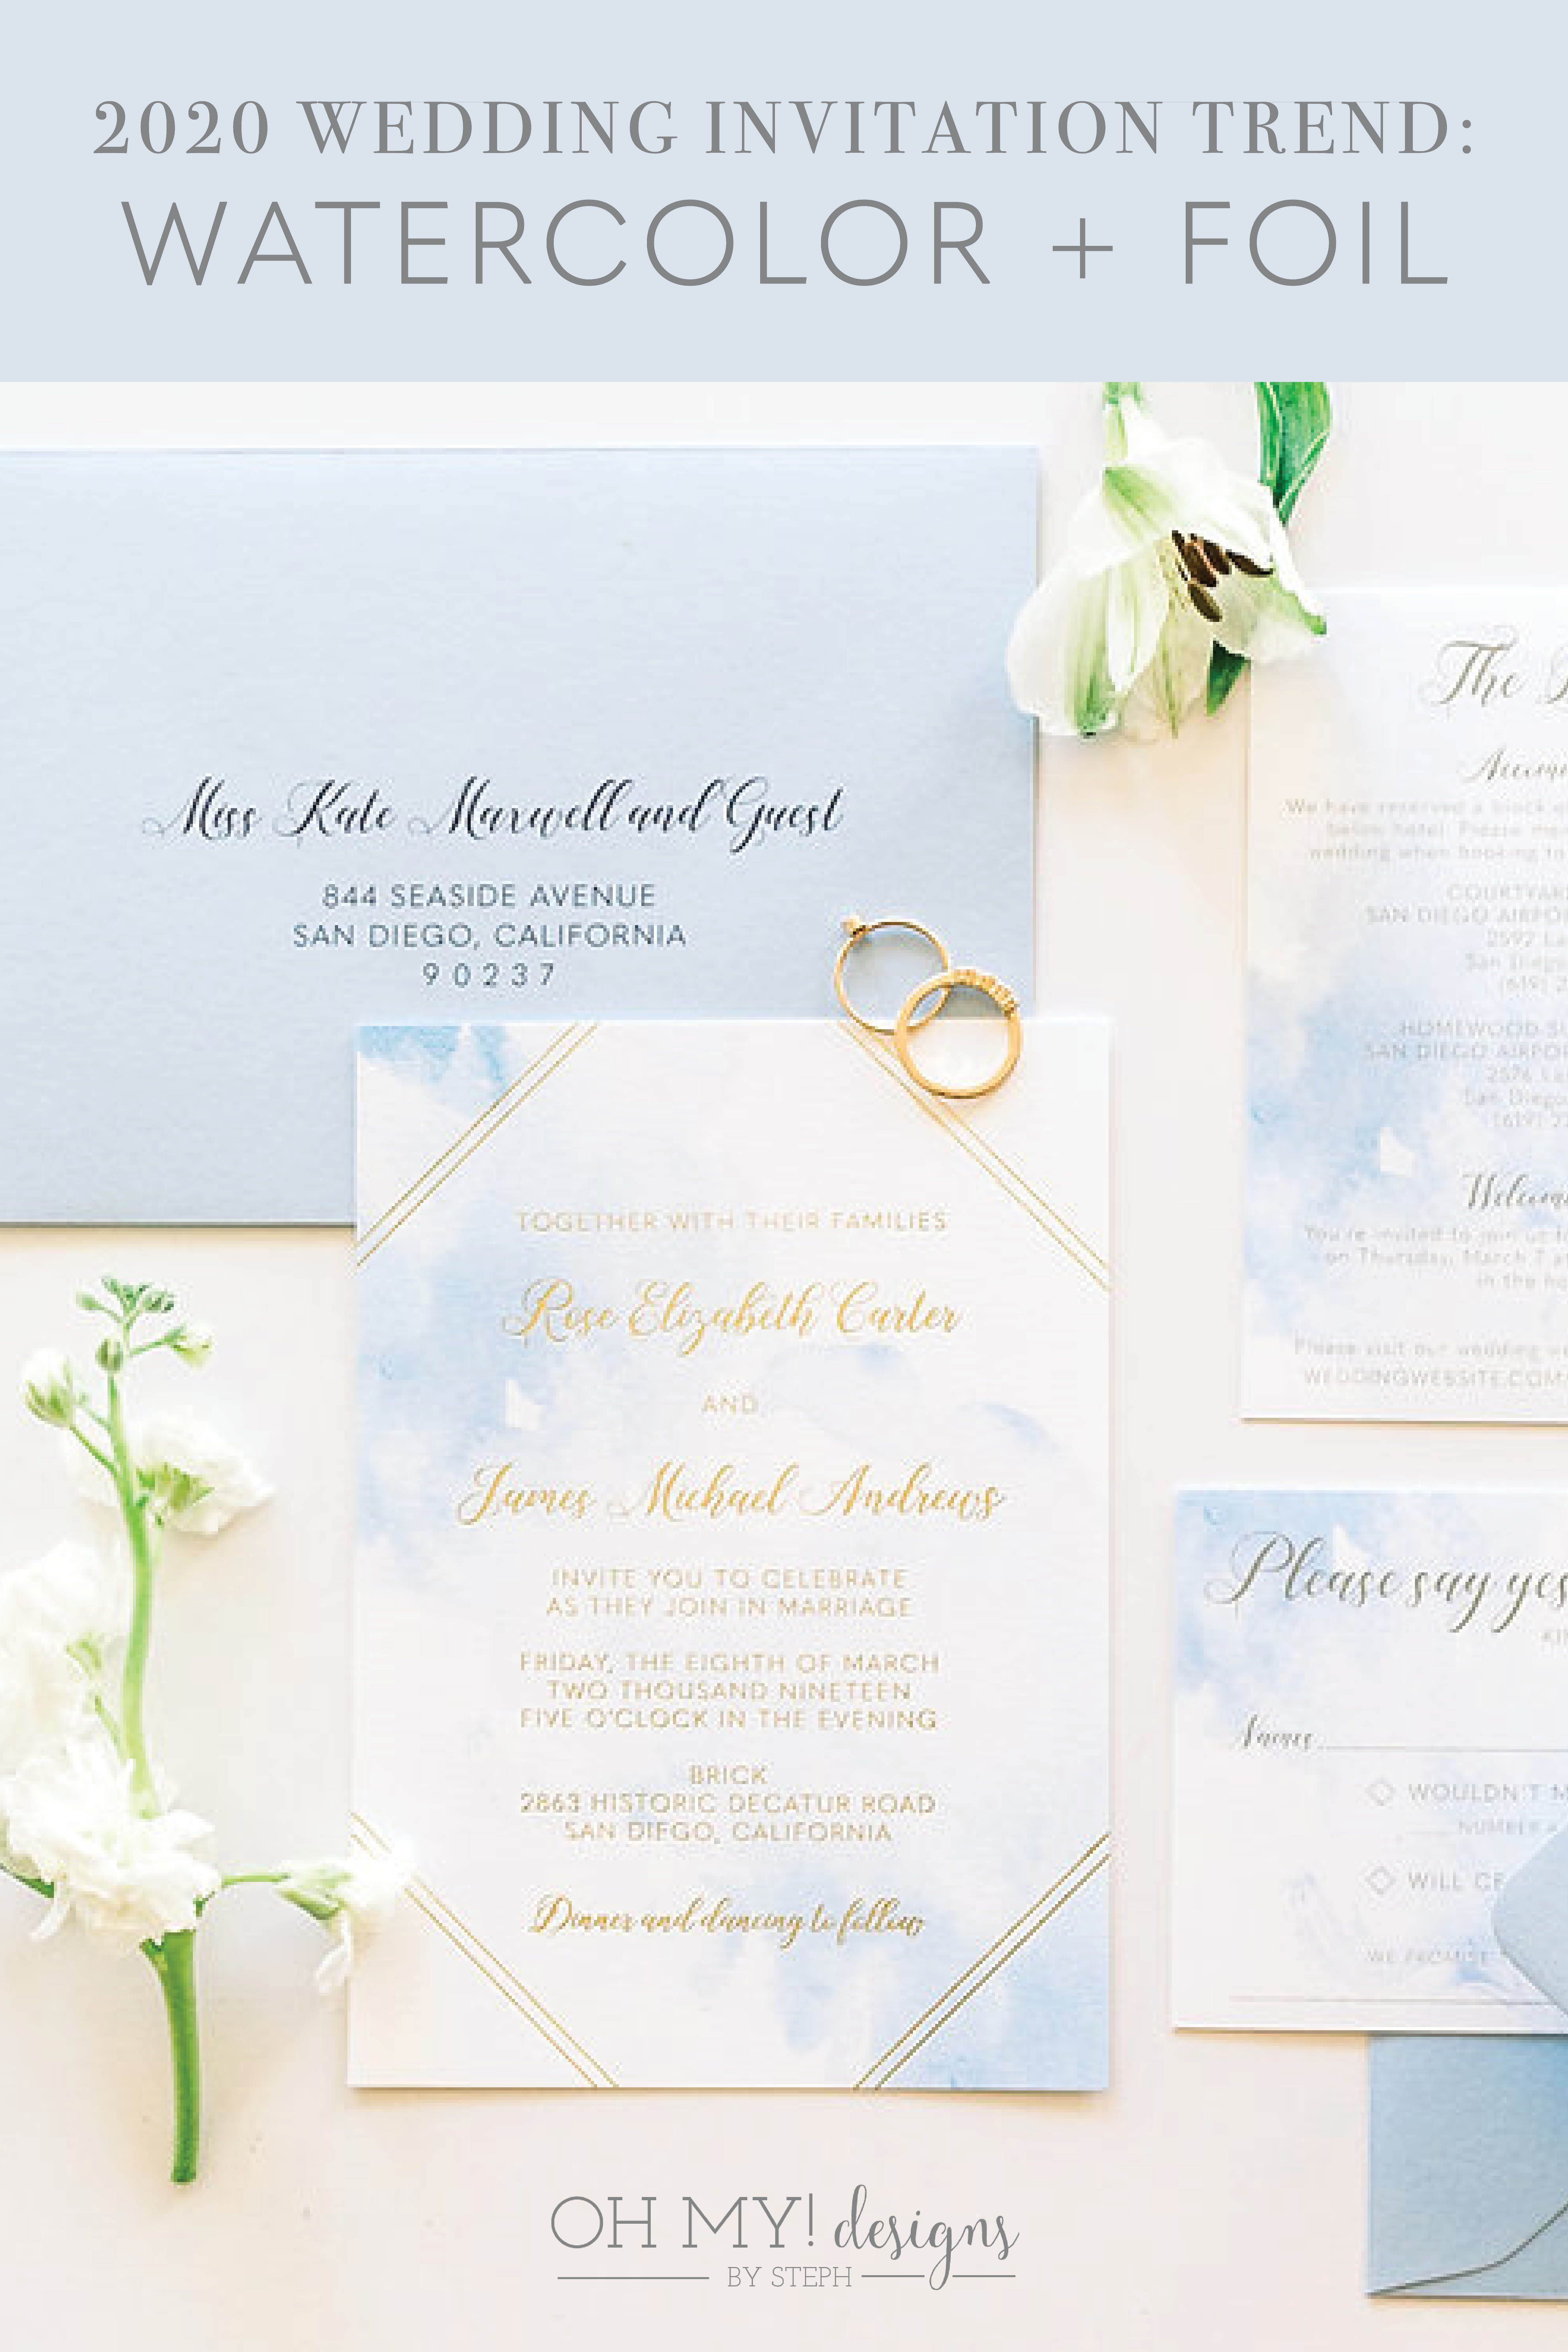 Gold Foil Watercolor Wedding Invitation Sample Oh My Designs By Steph Simple Wedding Invitations Foil Wedding Invitations Wedding Invitations